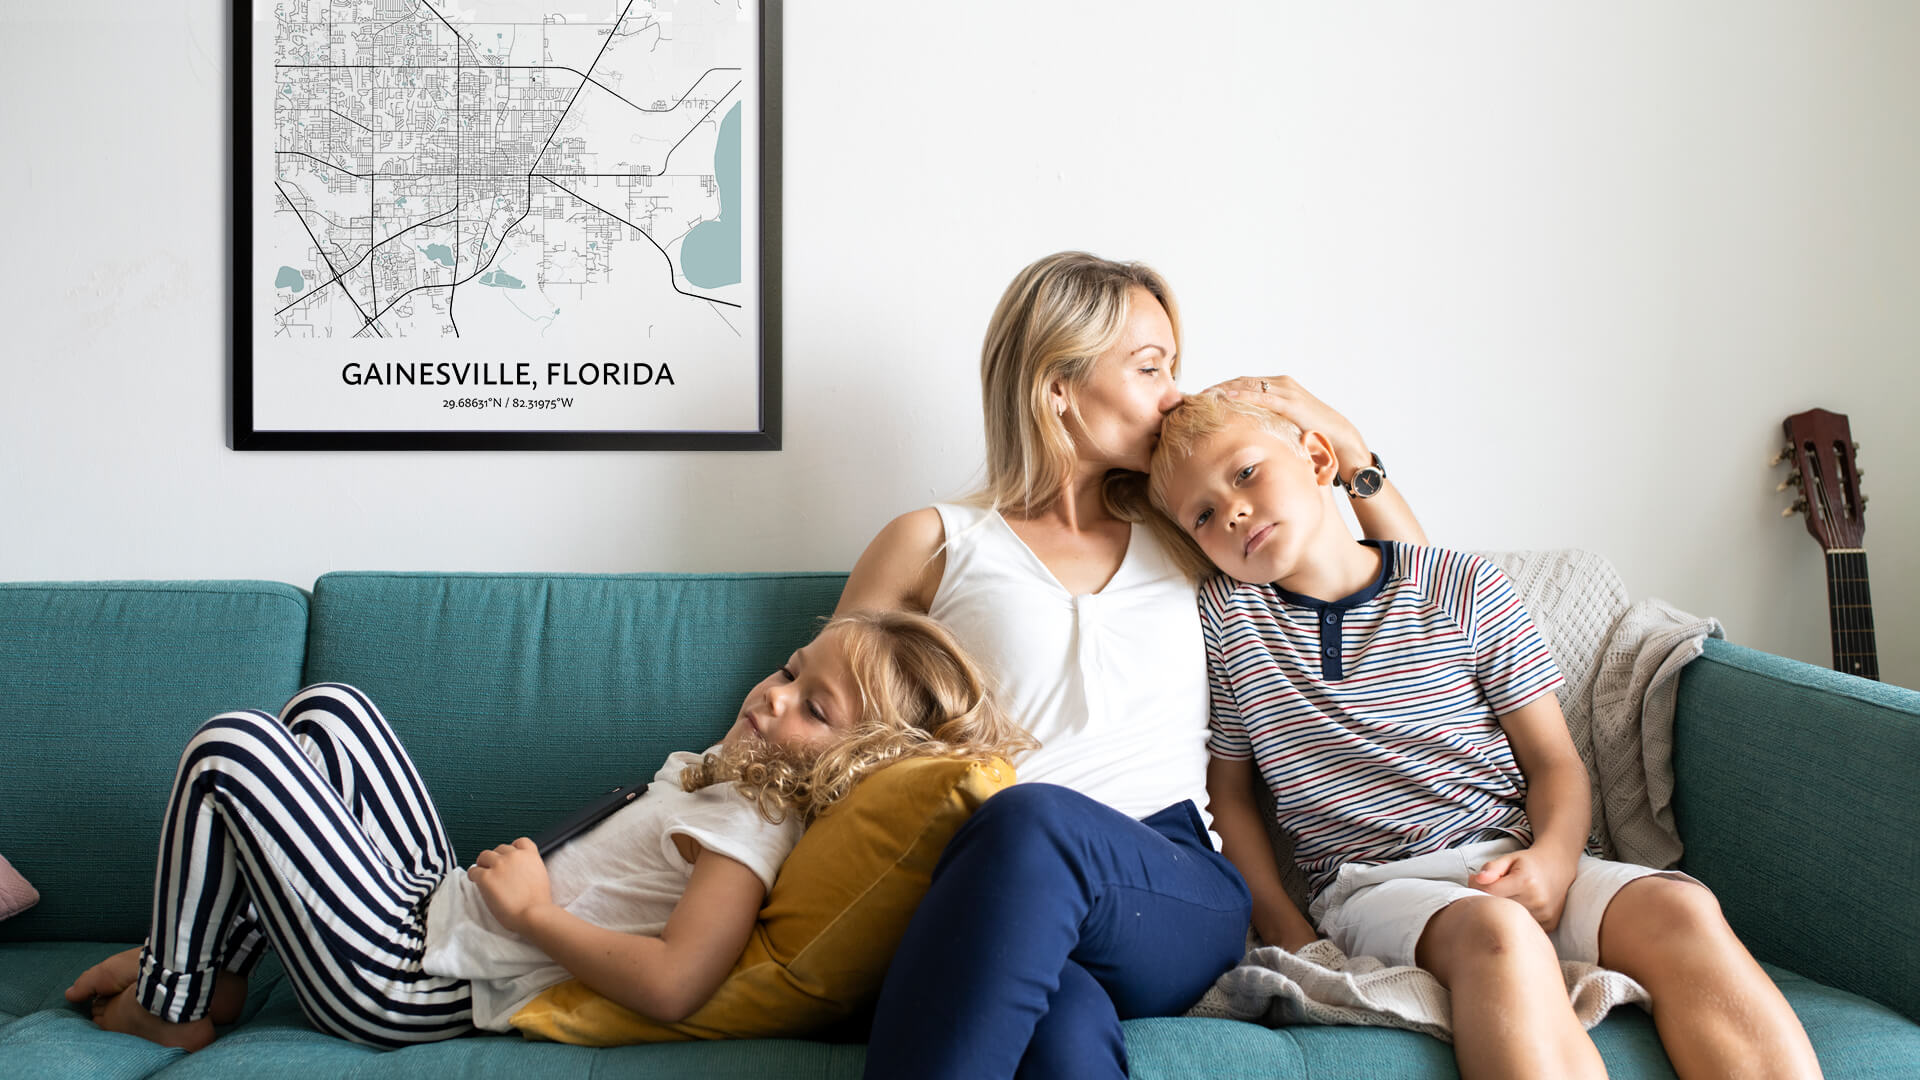 Gainesville map poster